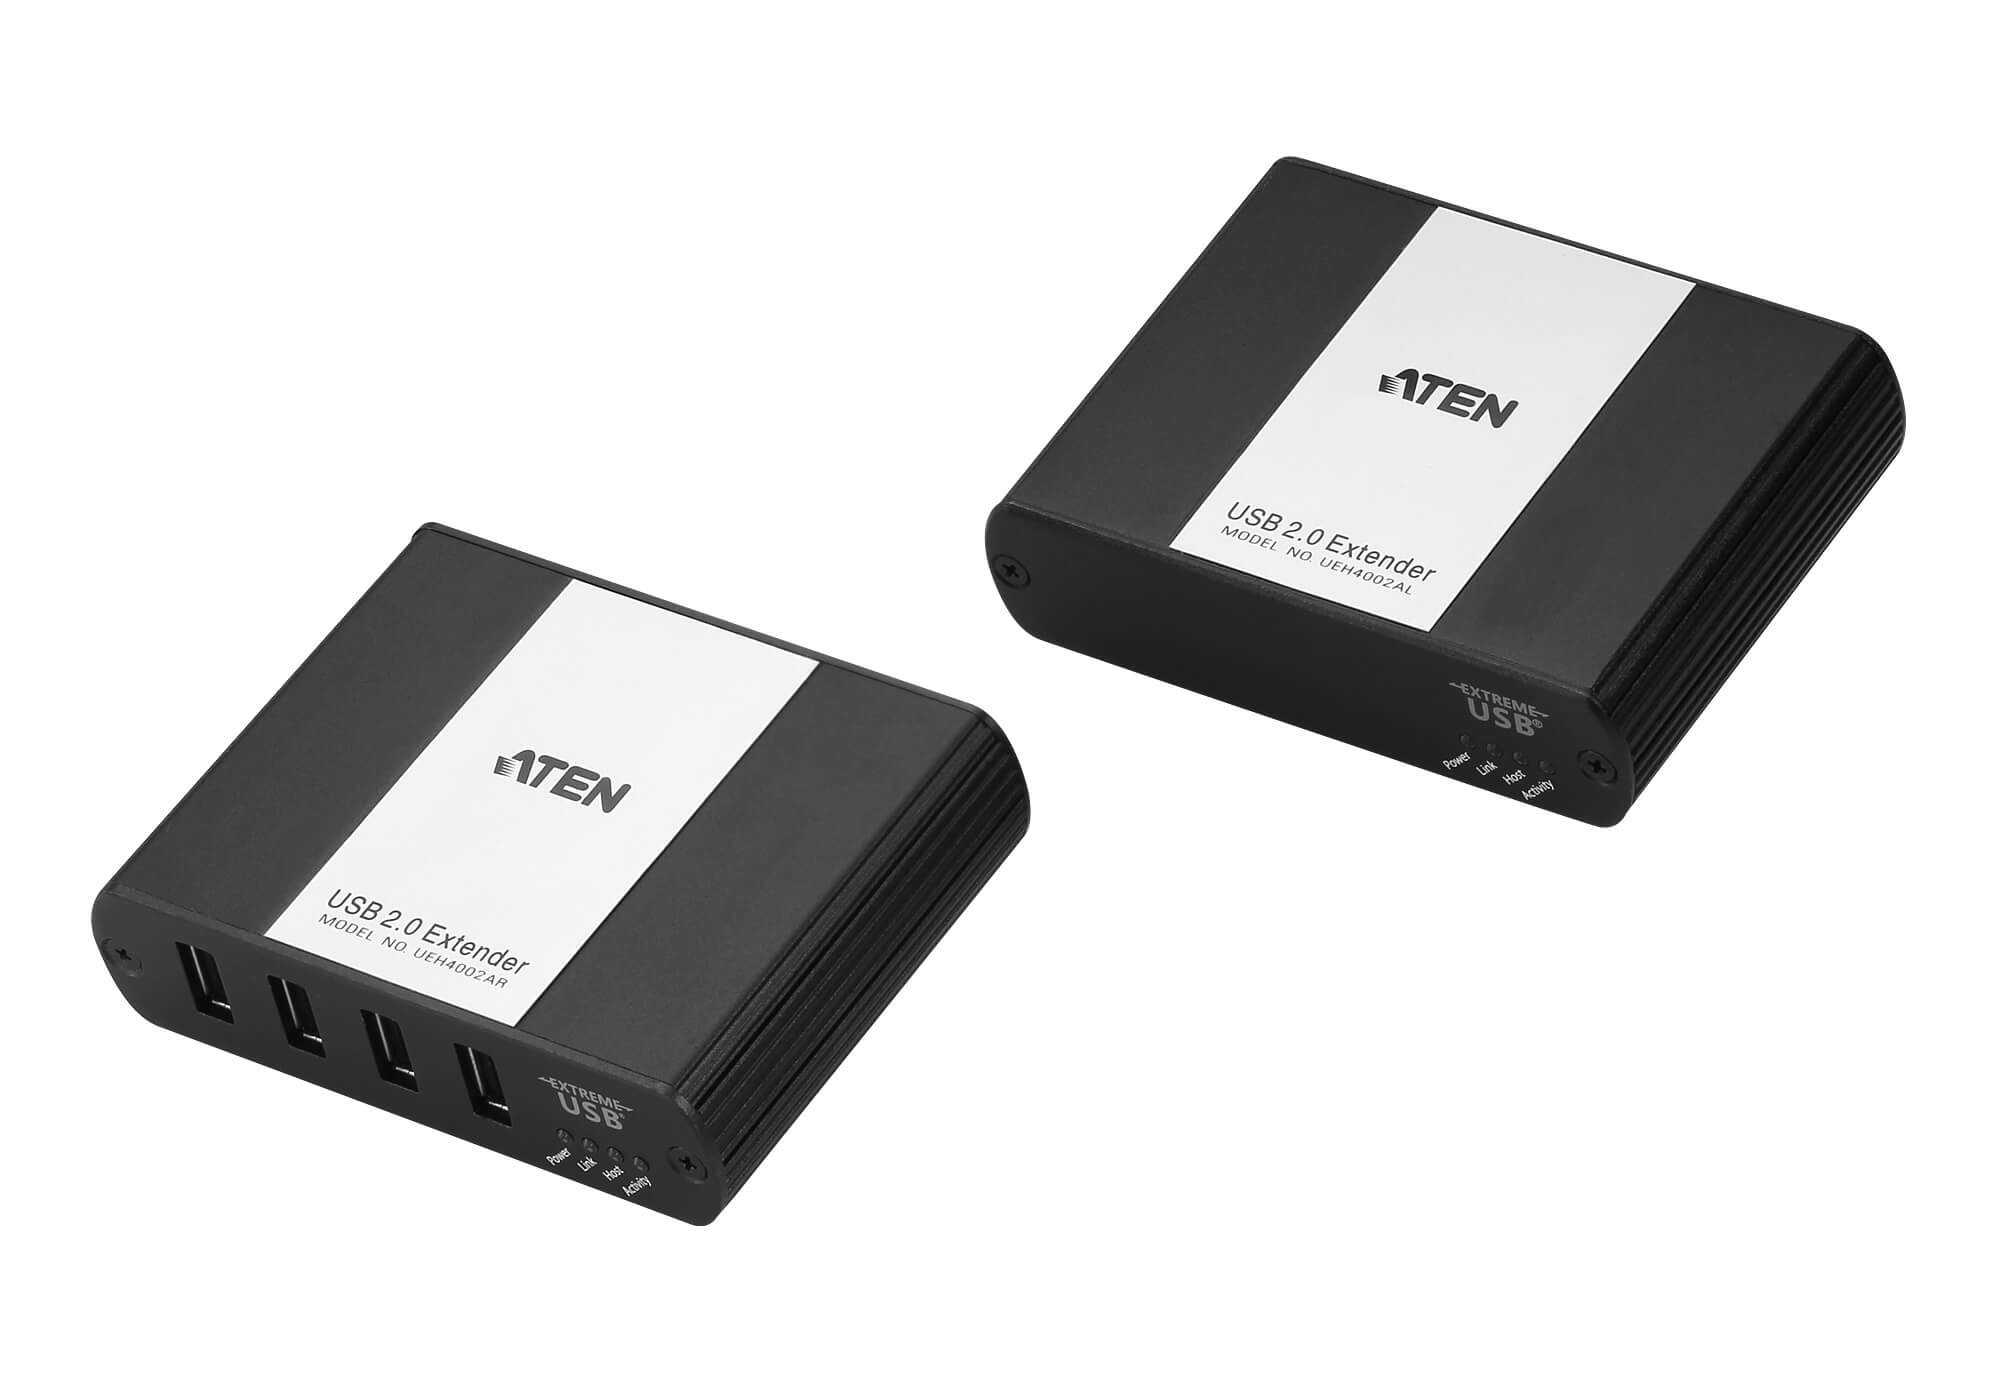 Aten USB 2.0 Cat 5 Extender with 4-Port Hub, ExtremeUSB feature supports transparent USB extension, extends up to 100m